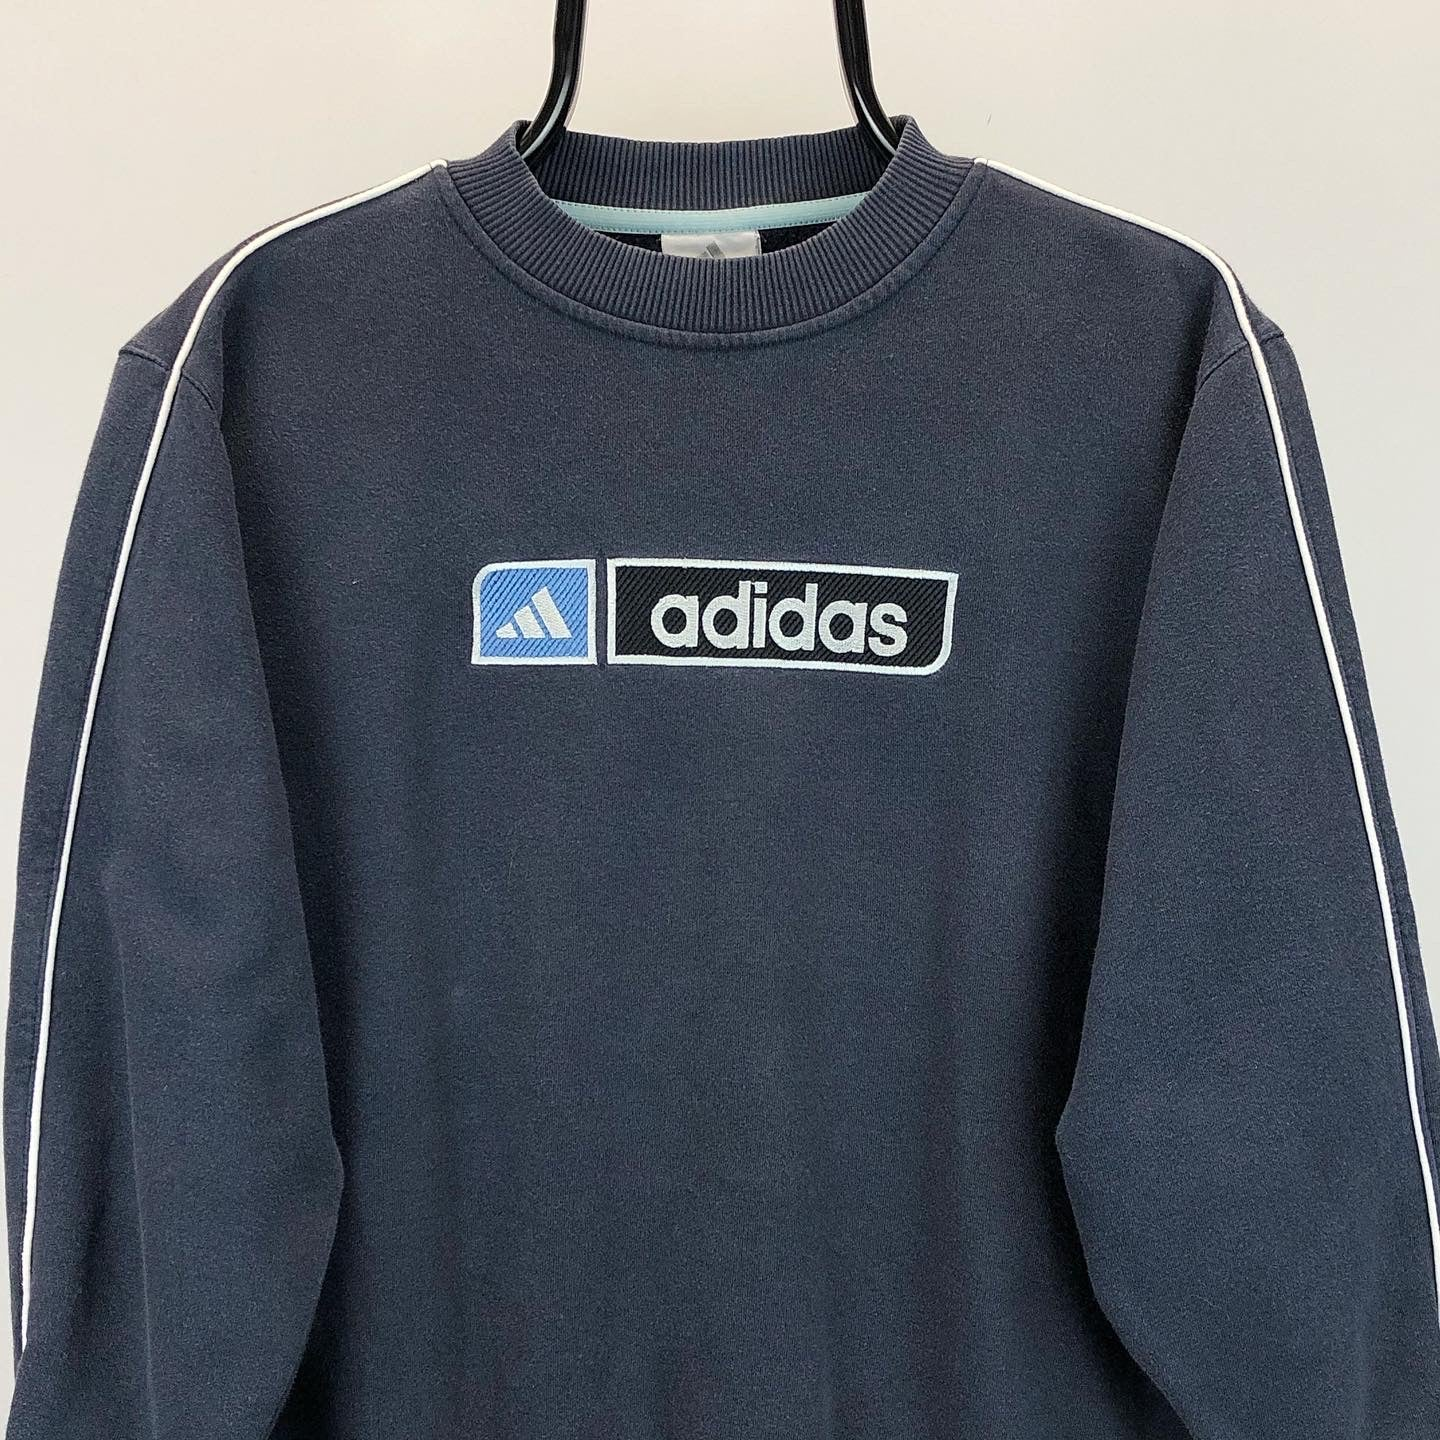 Vintage Adidas Spellout Sweatshirt in Navy - Men's Small/Women's Medium